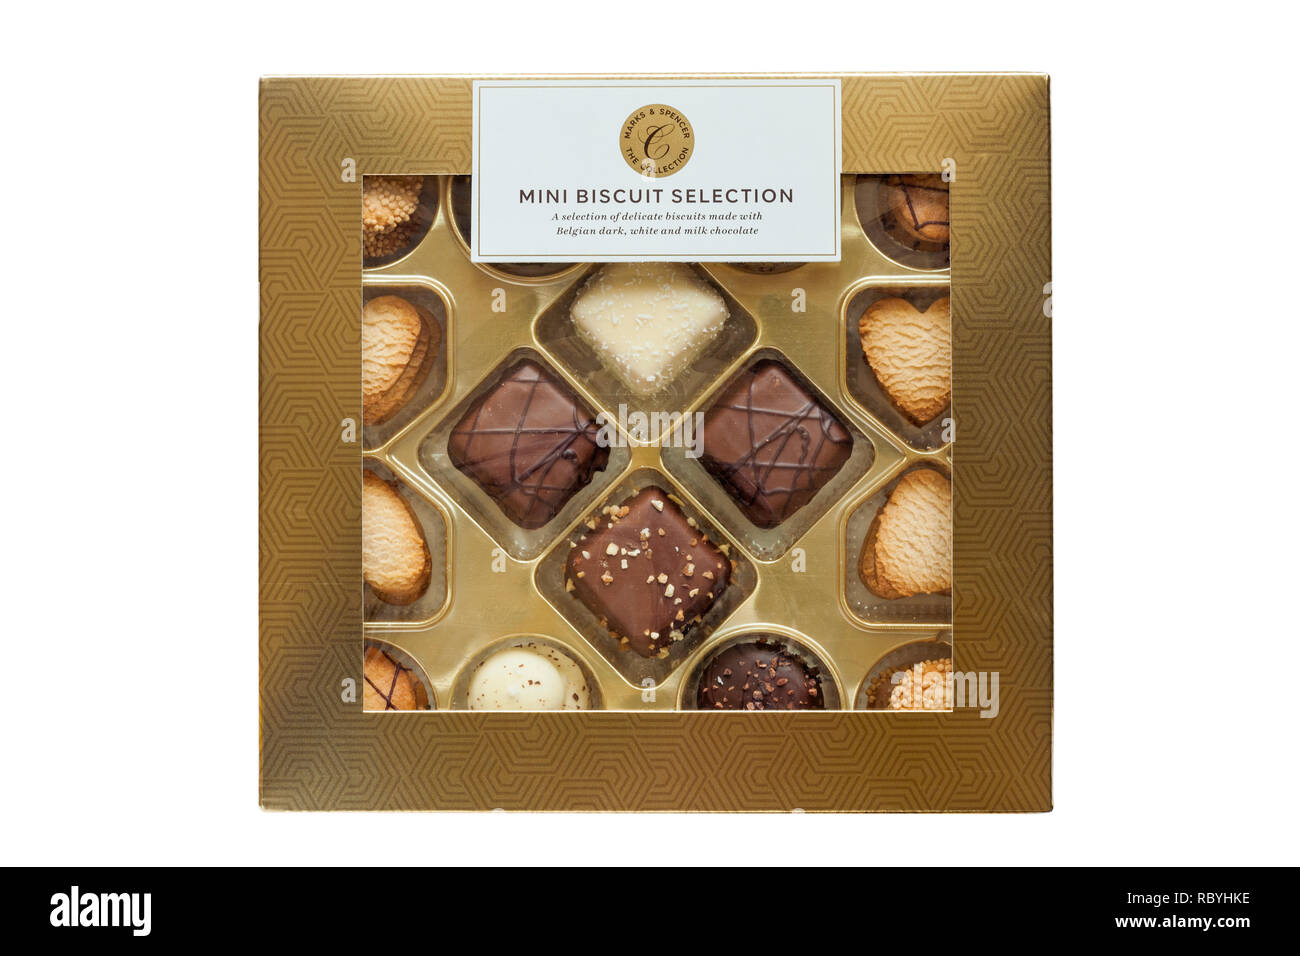 Marks Spencers Box Belgian Chocolate Stock Photos Marks